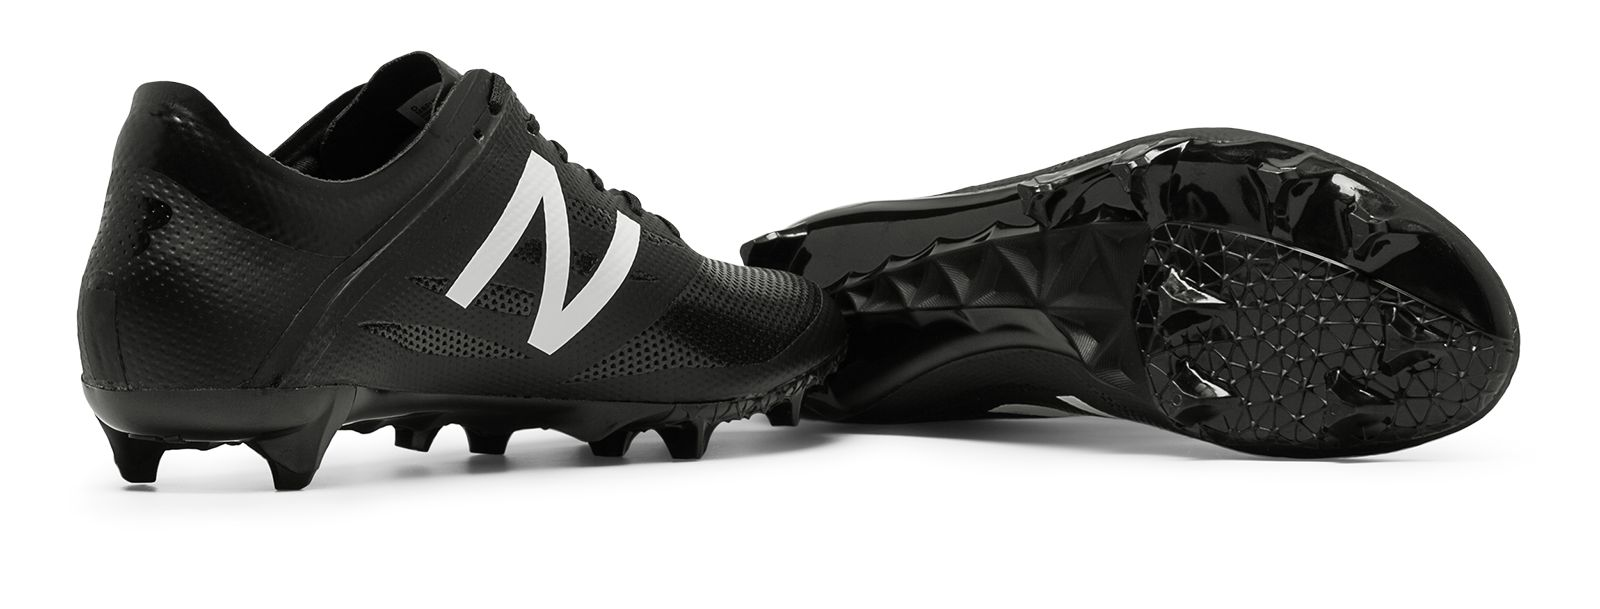 a2a6ea23a23f0 Buy new balance furon 2.0 shoes > OFF64% Discounted